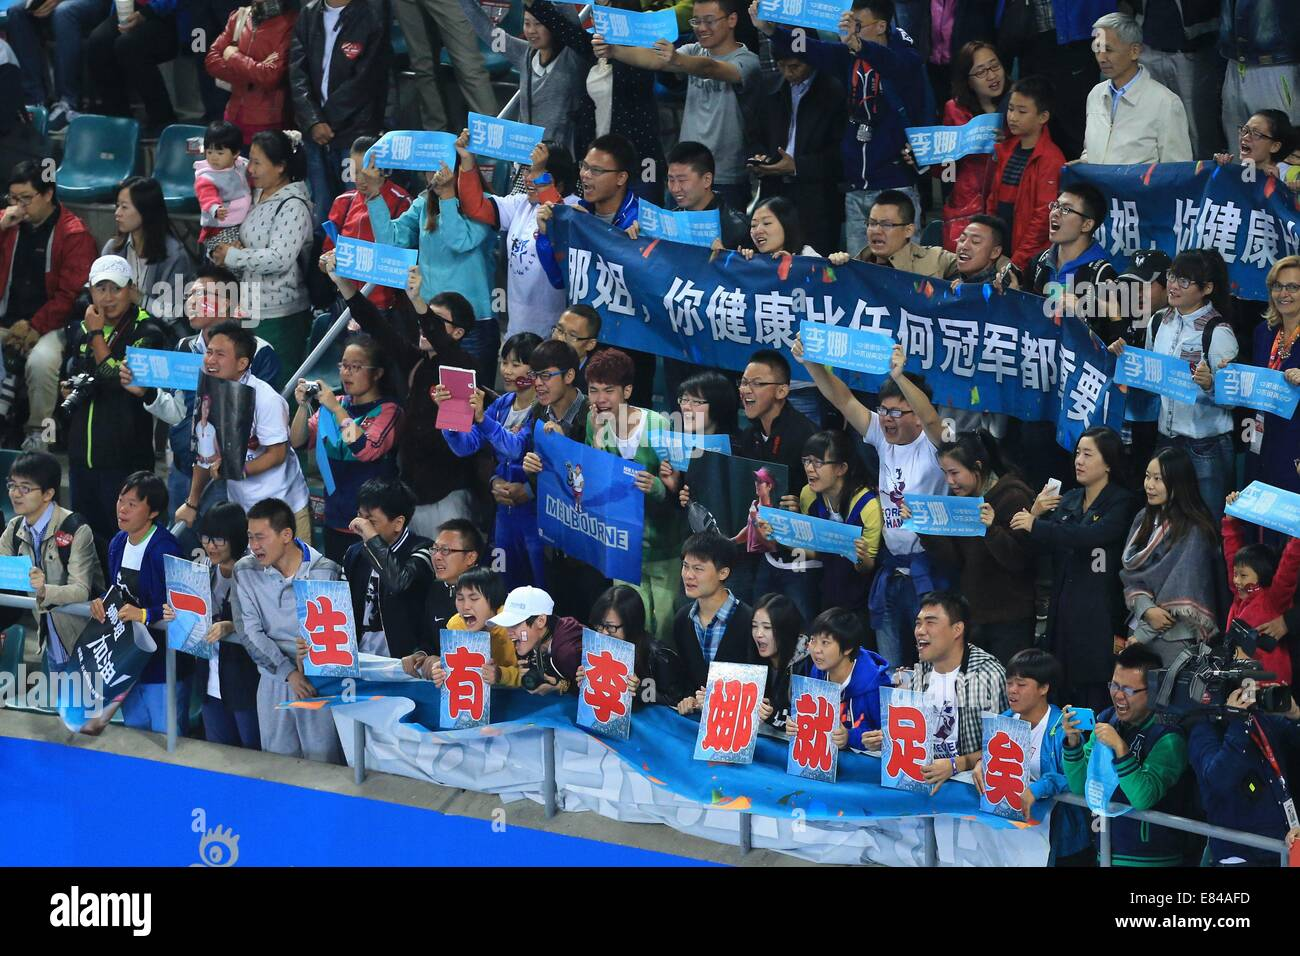 Beijing, China. 30th Sep, 2014. The fans of Li Na hold up posters writing their wishes for her during Li Na's retirement Stock Photo